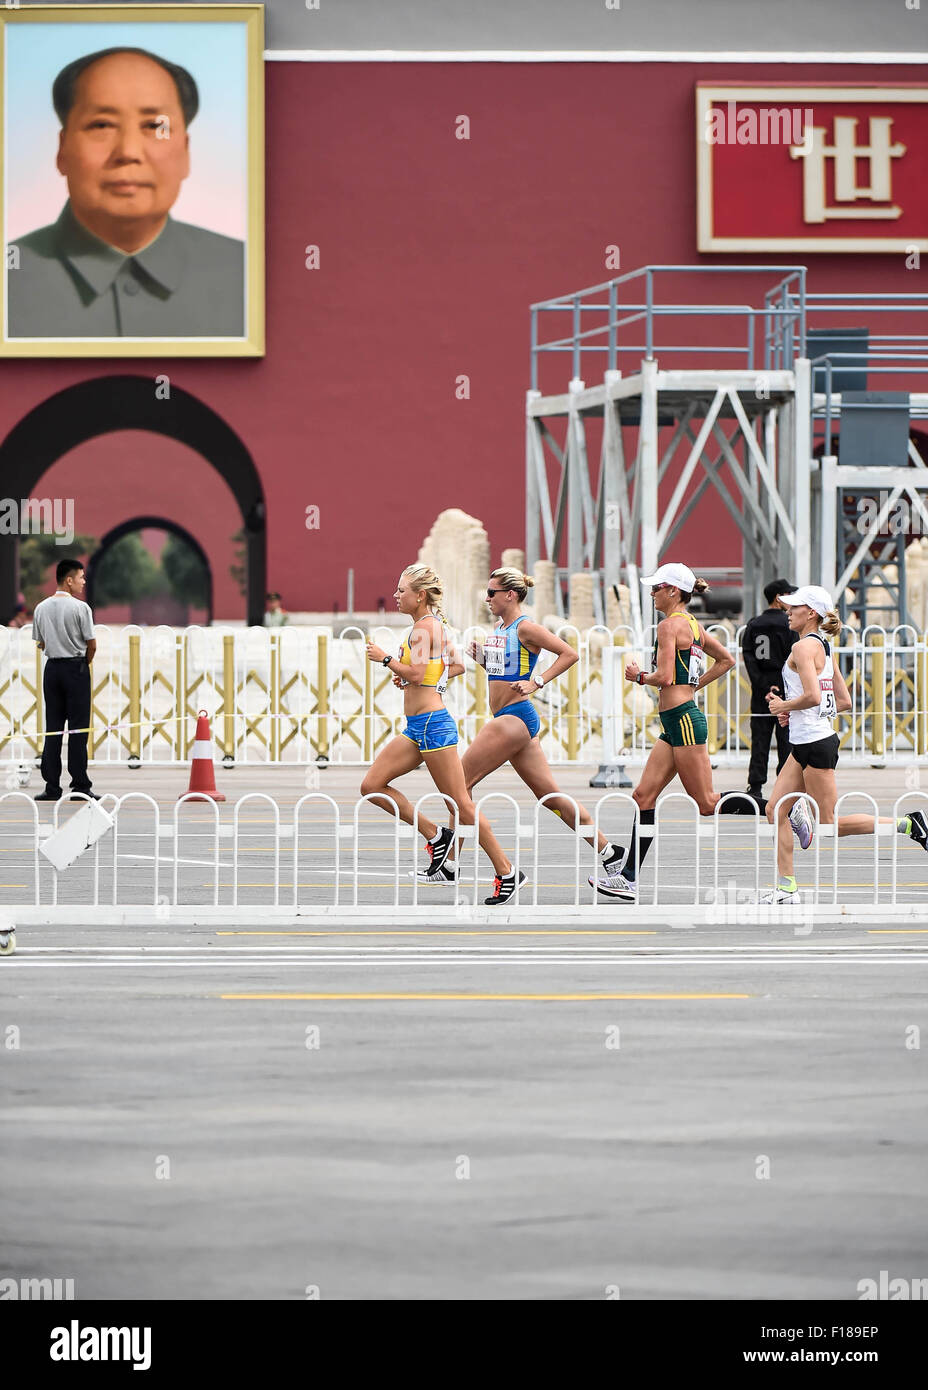 Beijing, China. 30th Aug, 2015. Athlete compete during the women's marathon final at the 2015 IAAF World Championships - Stock Image